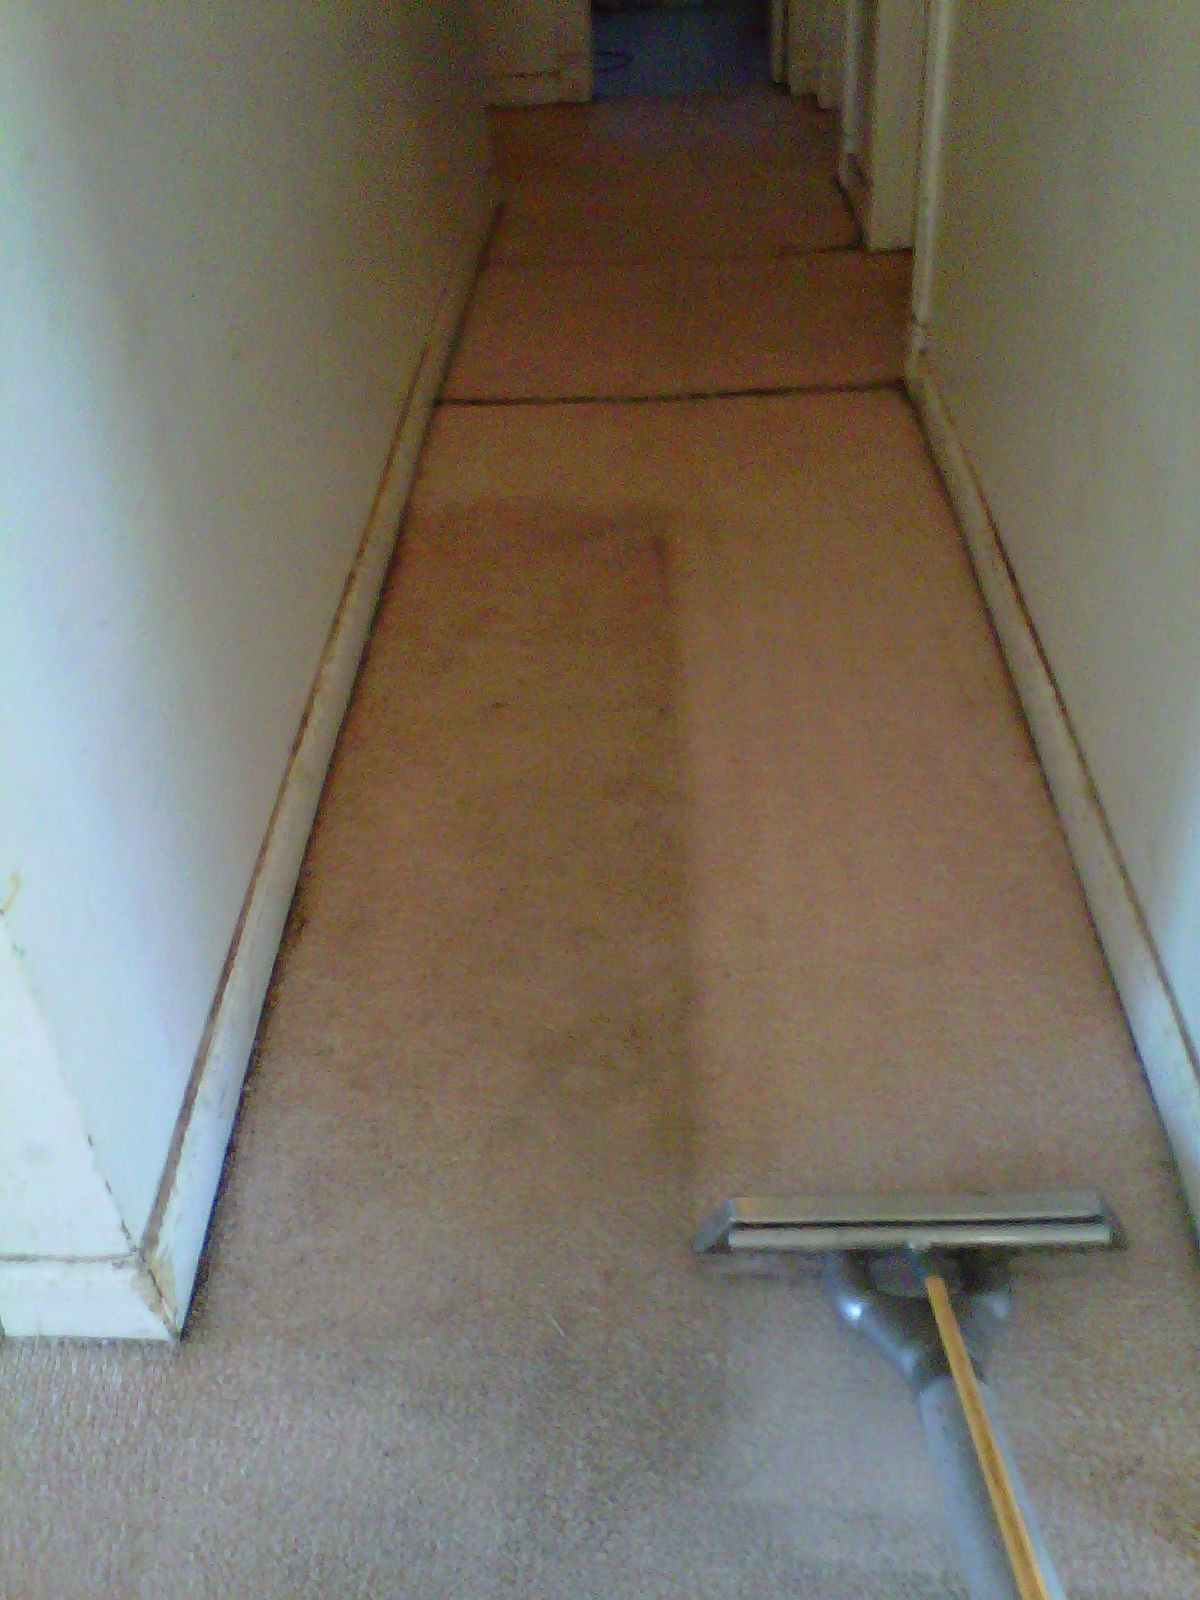 are you looking for carpet cleaning services in san diego area if so stanley steemer provides the best carpet cleaning and cleaners in san